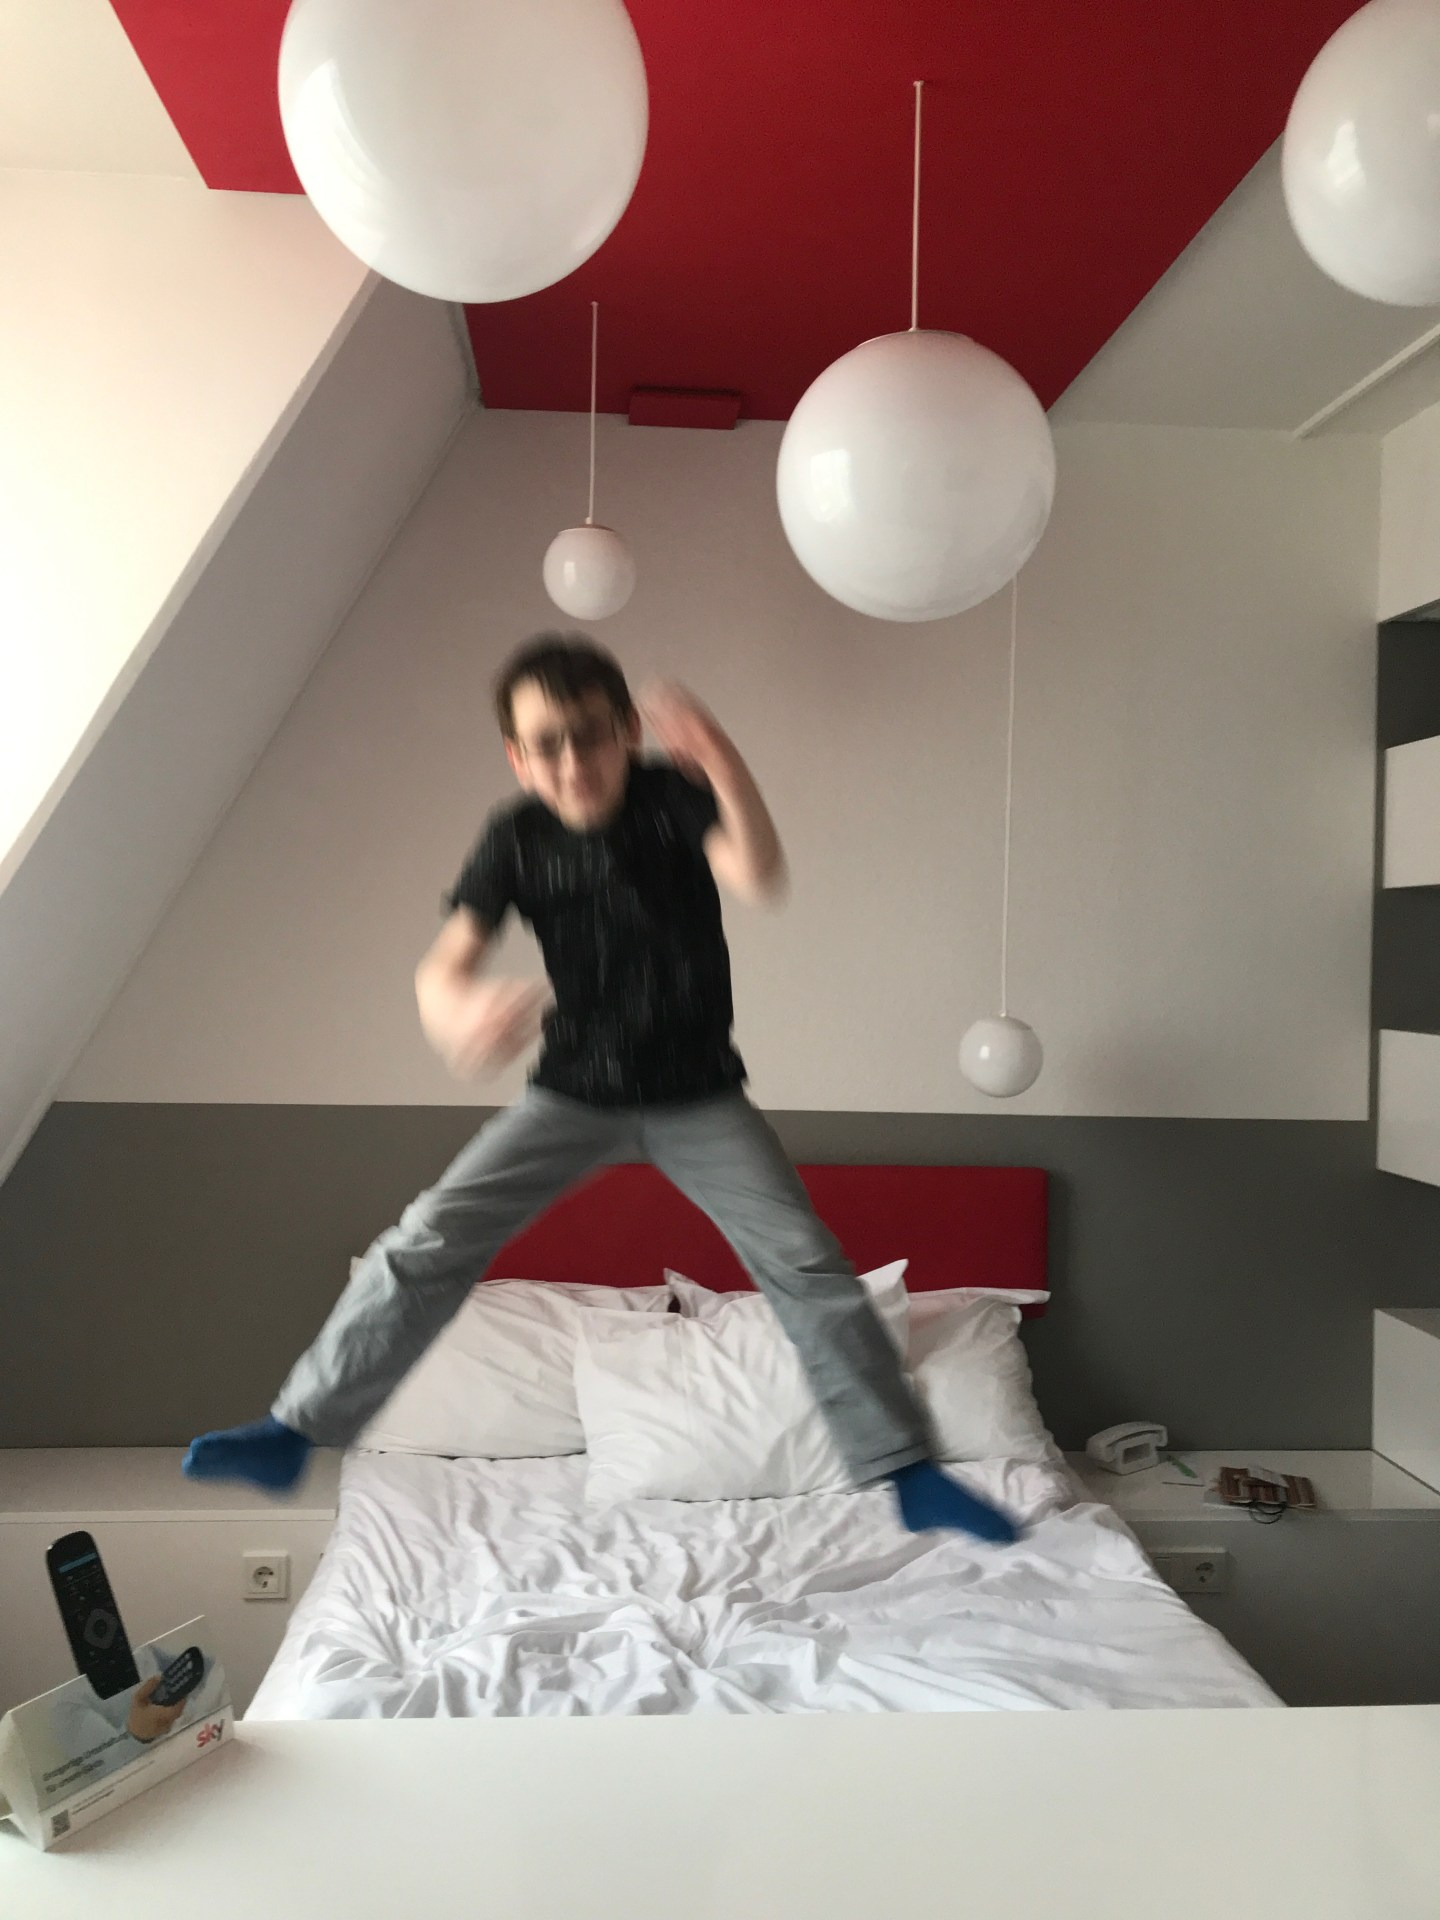 My son jumping for joy at Ibis Styles hotel in Aachen. It might have had something to do with the make-your-own pancake machine downstairs.